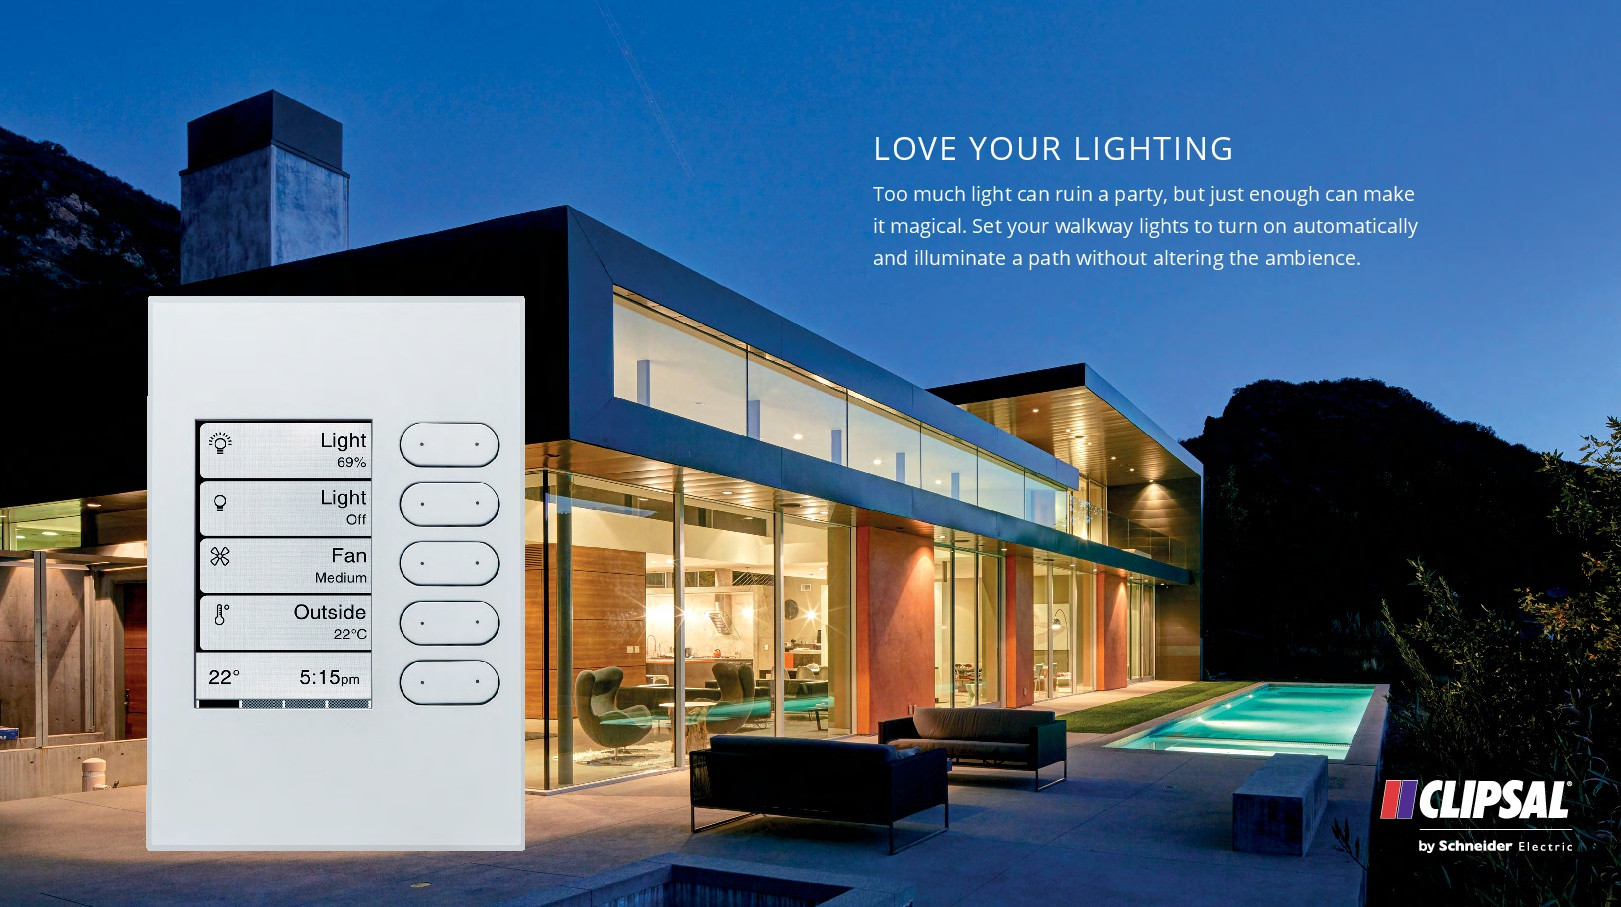 The clipsal C-bus edlt switch with lighting control and home automation and energy management